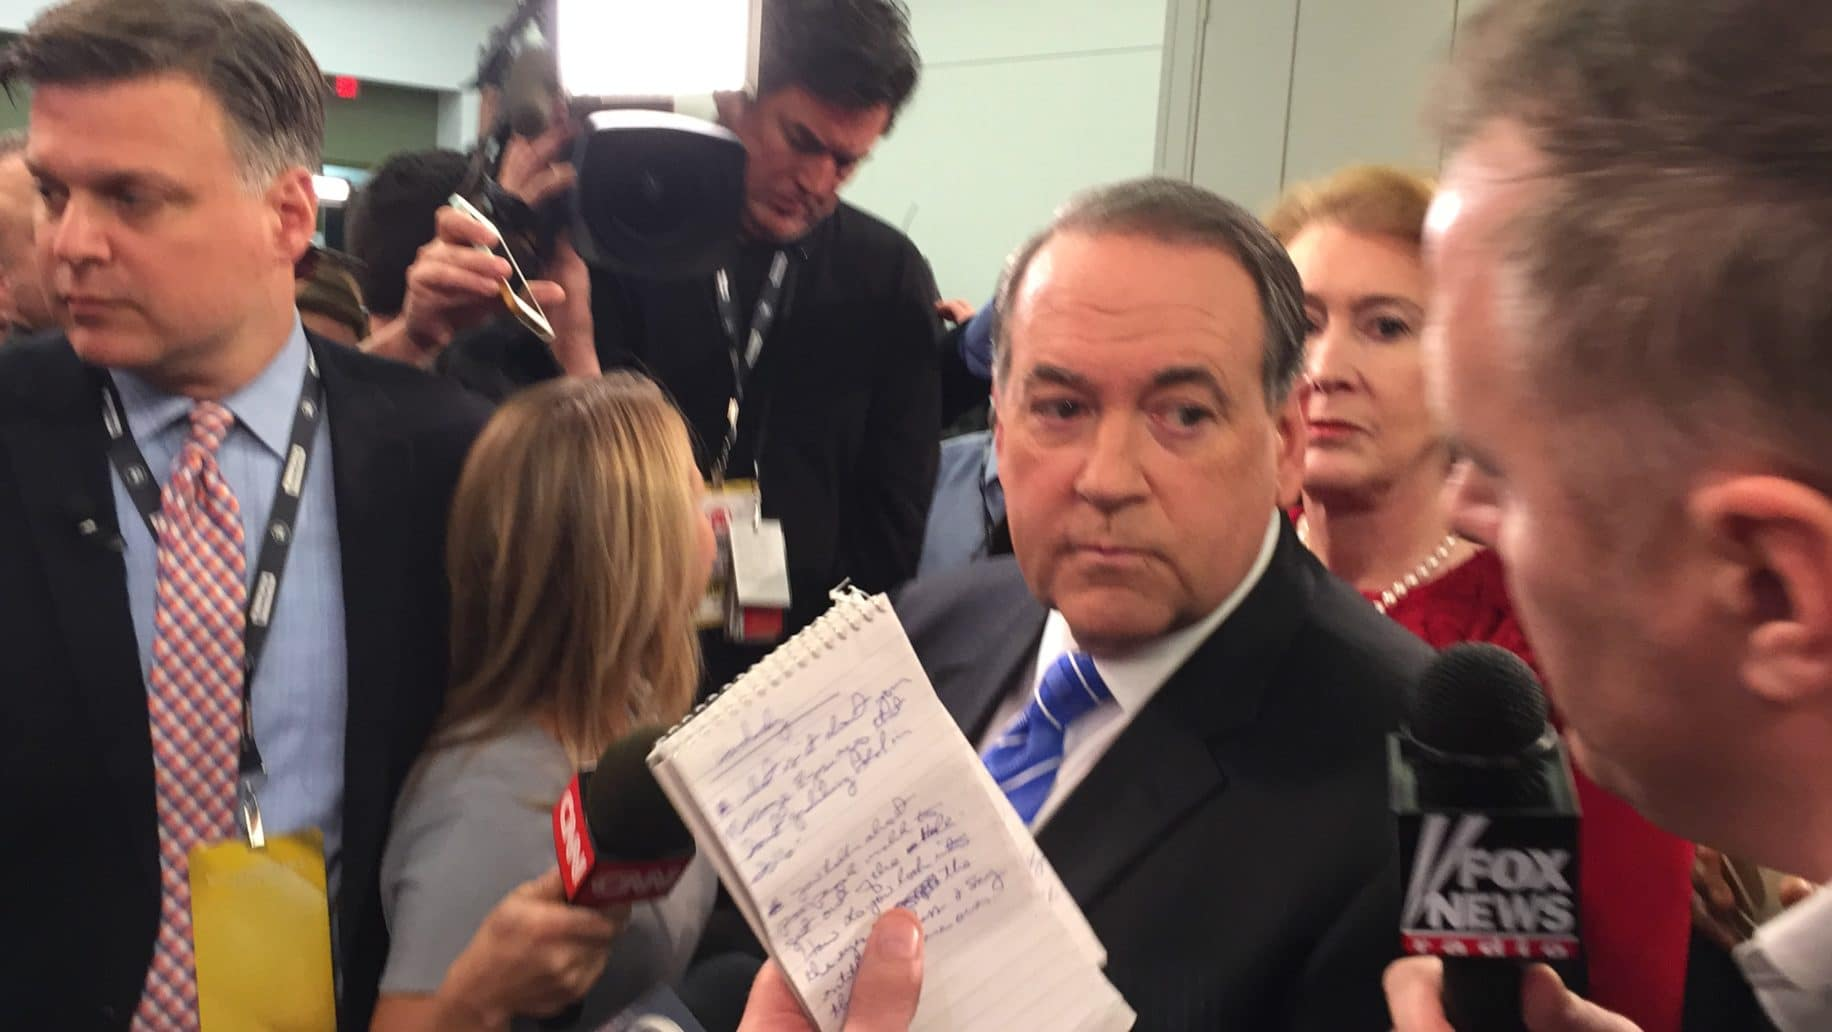 Mike Huckabee in spin room at the FNC/Google GOP Presidential Debate in Des Moines, IA.